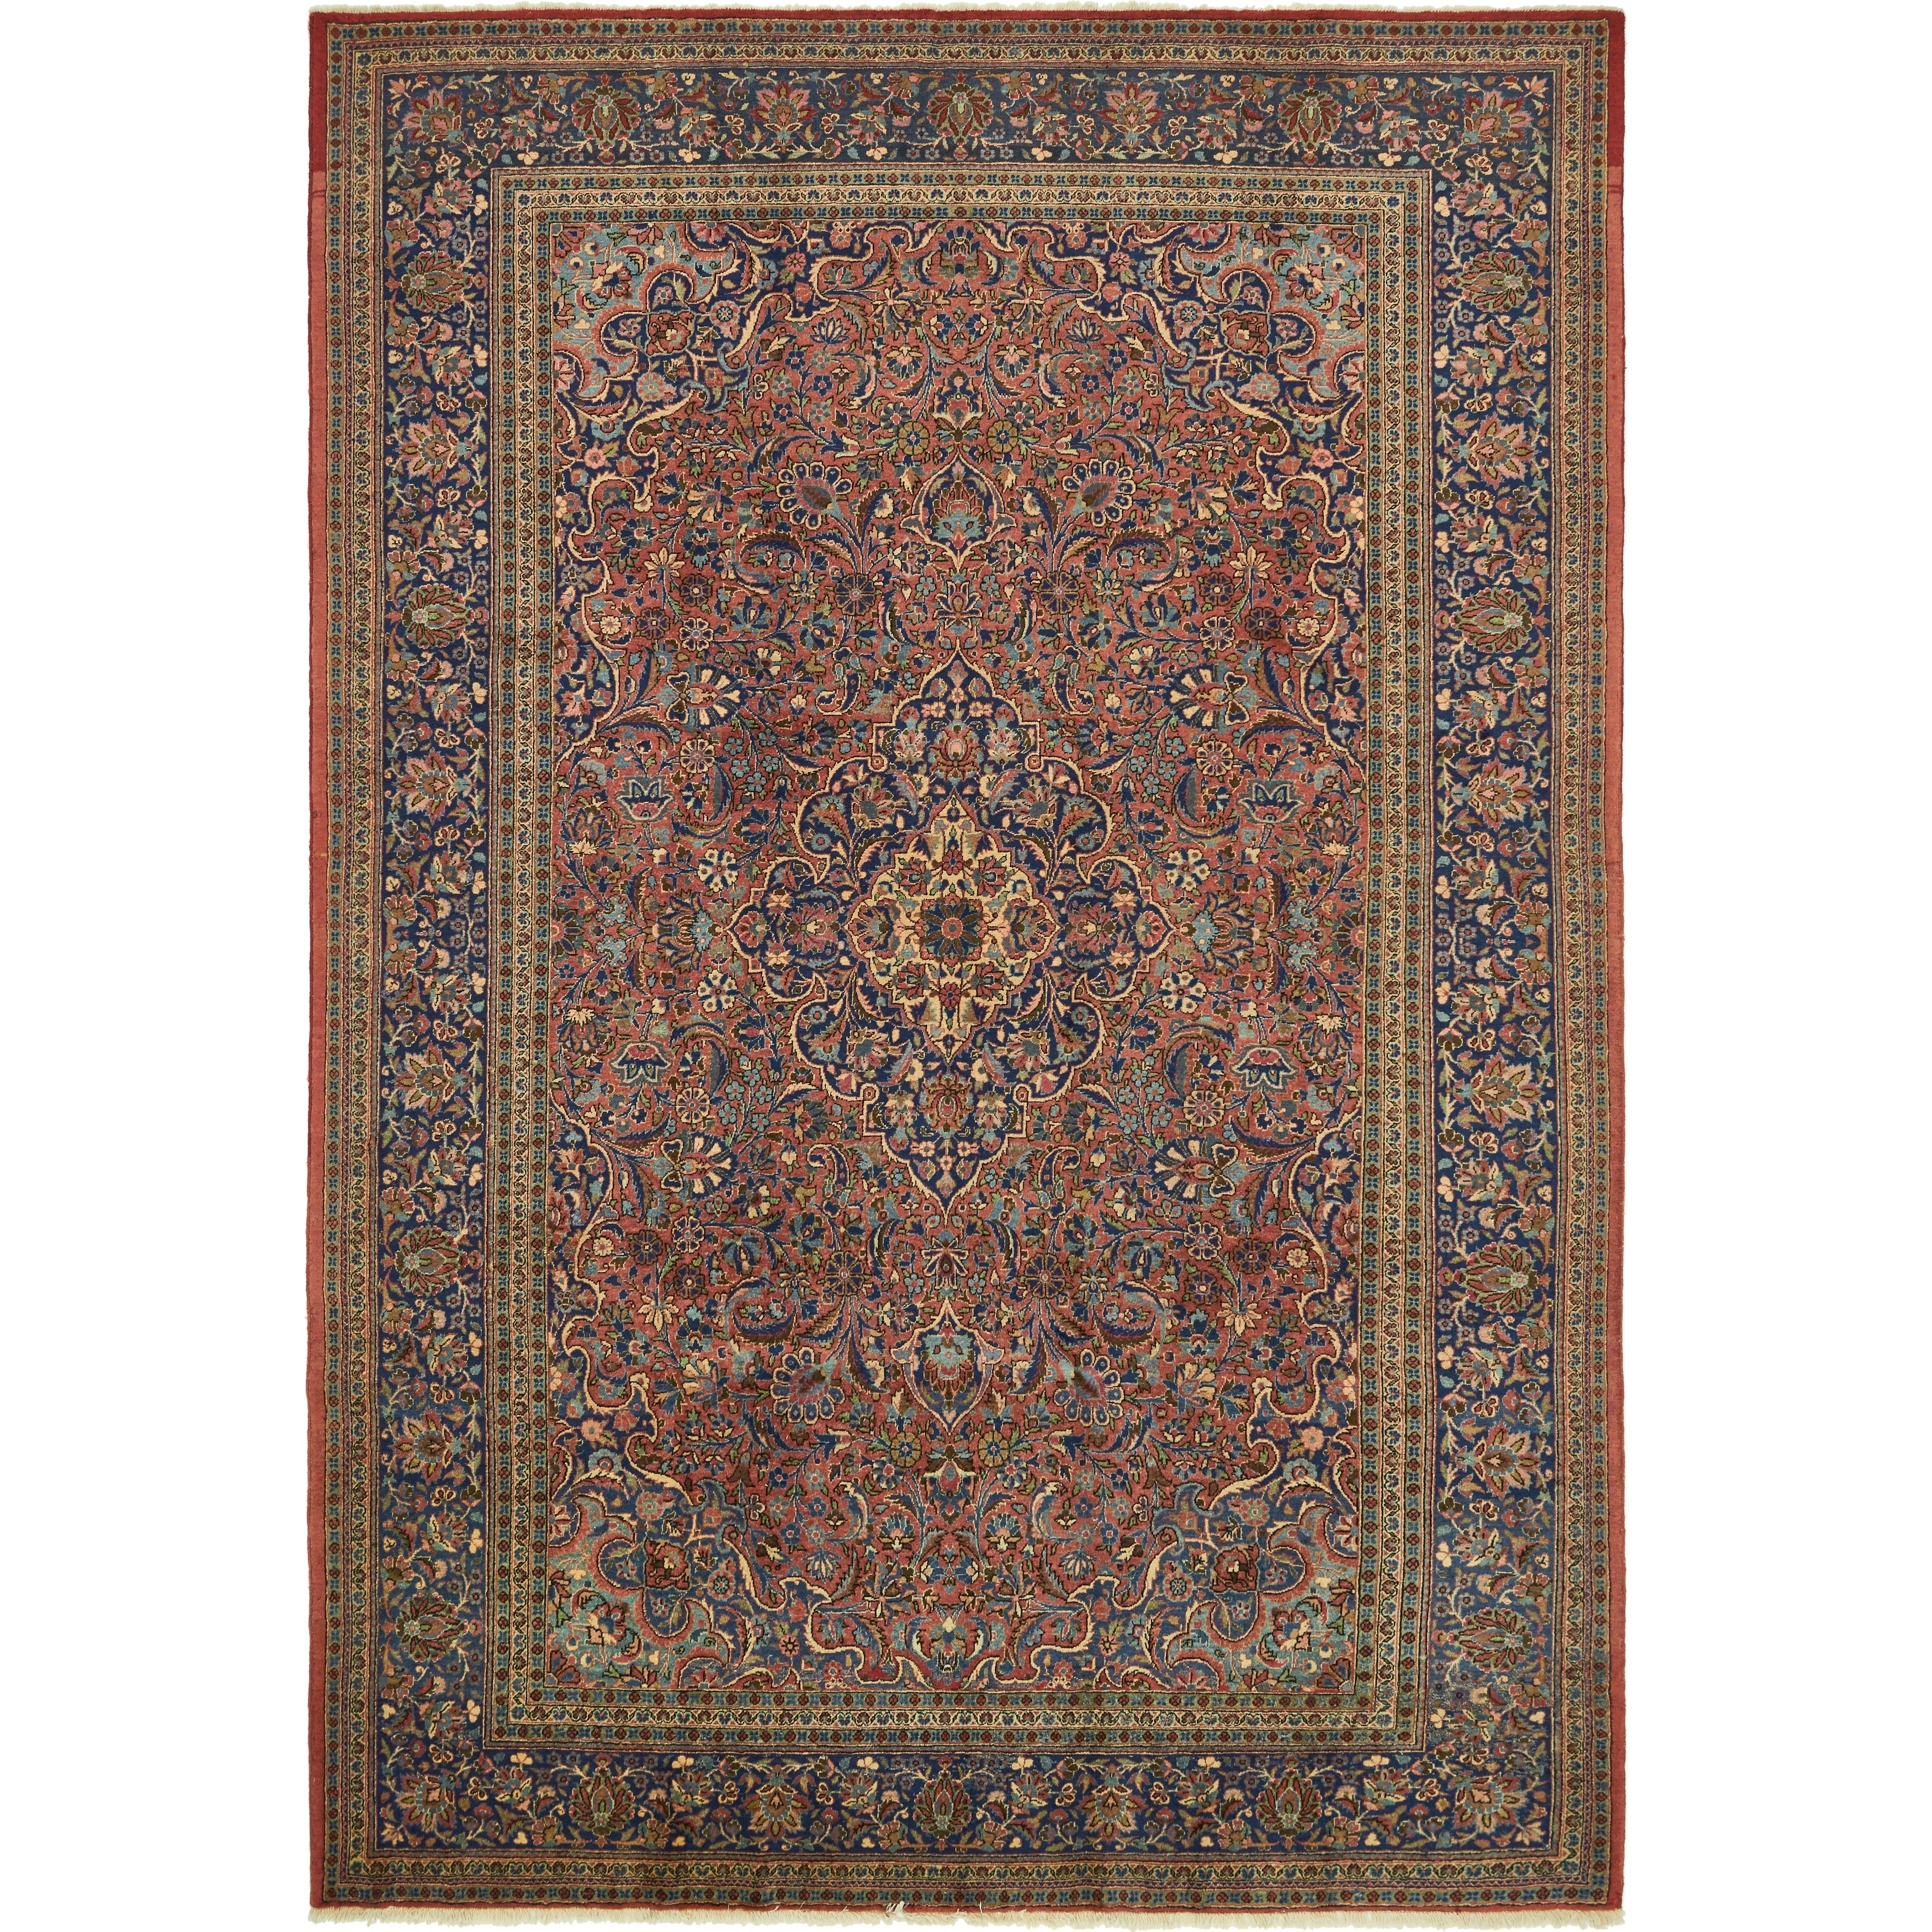 Hand Knotted Kashan Antique Wool Area Rug - 9 x 12 10 (peach - 9 x 12 10)